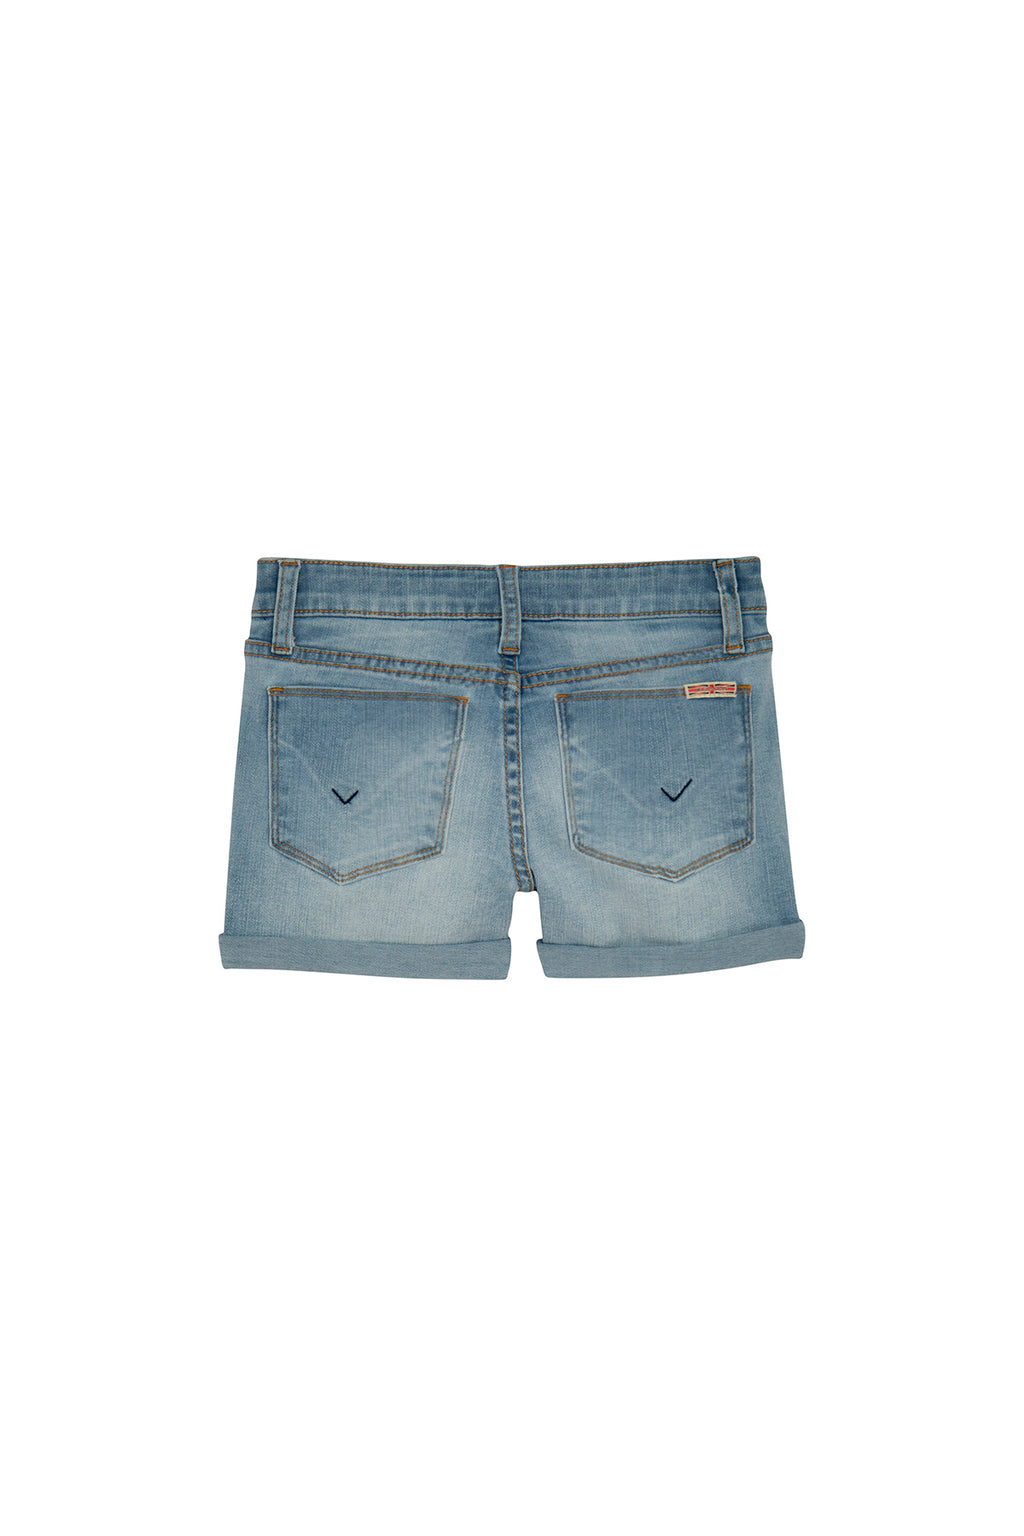 Big Girls Bria Short, SIzes 7-16 - hudsonjeans